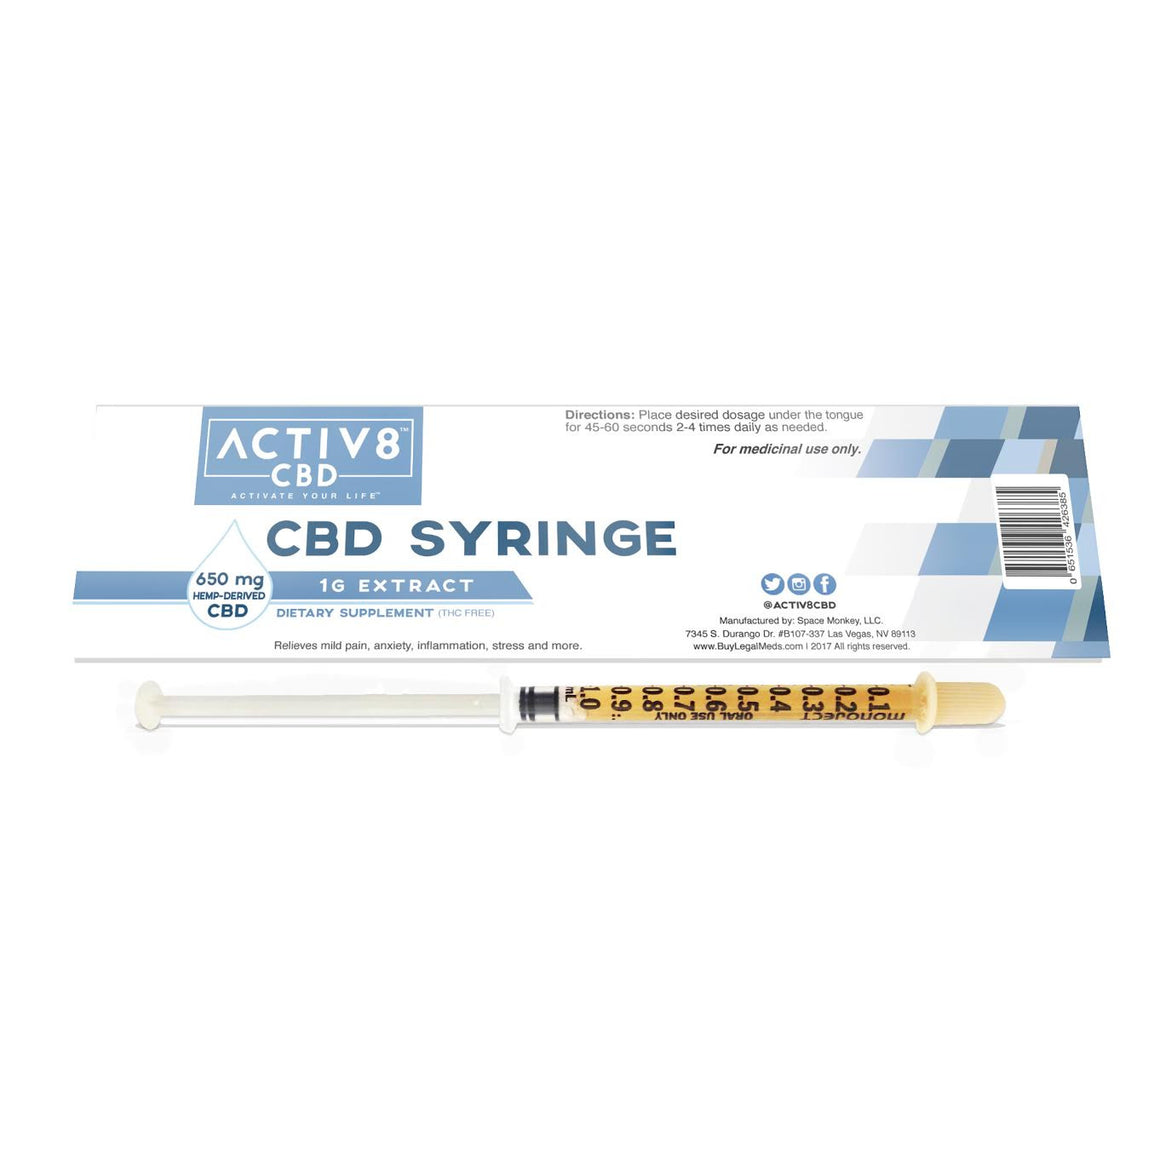 ACTIV8 CBD SYRINGE - (650 mg / 1 Gram CBD Per Syringe - 21+ Servings) - Helps Relieve Mild Pain, Stress, Anxiety, Inflammation, Fibromyalgia and More